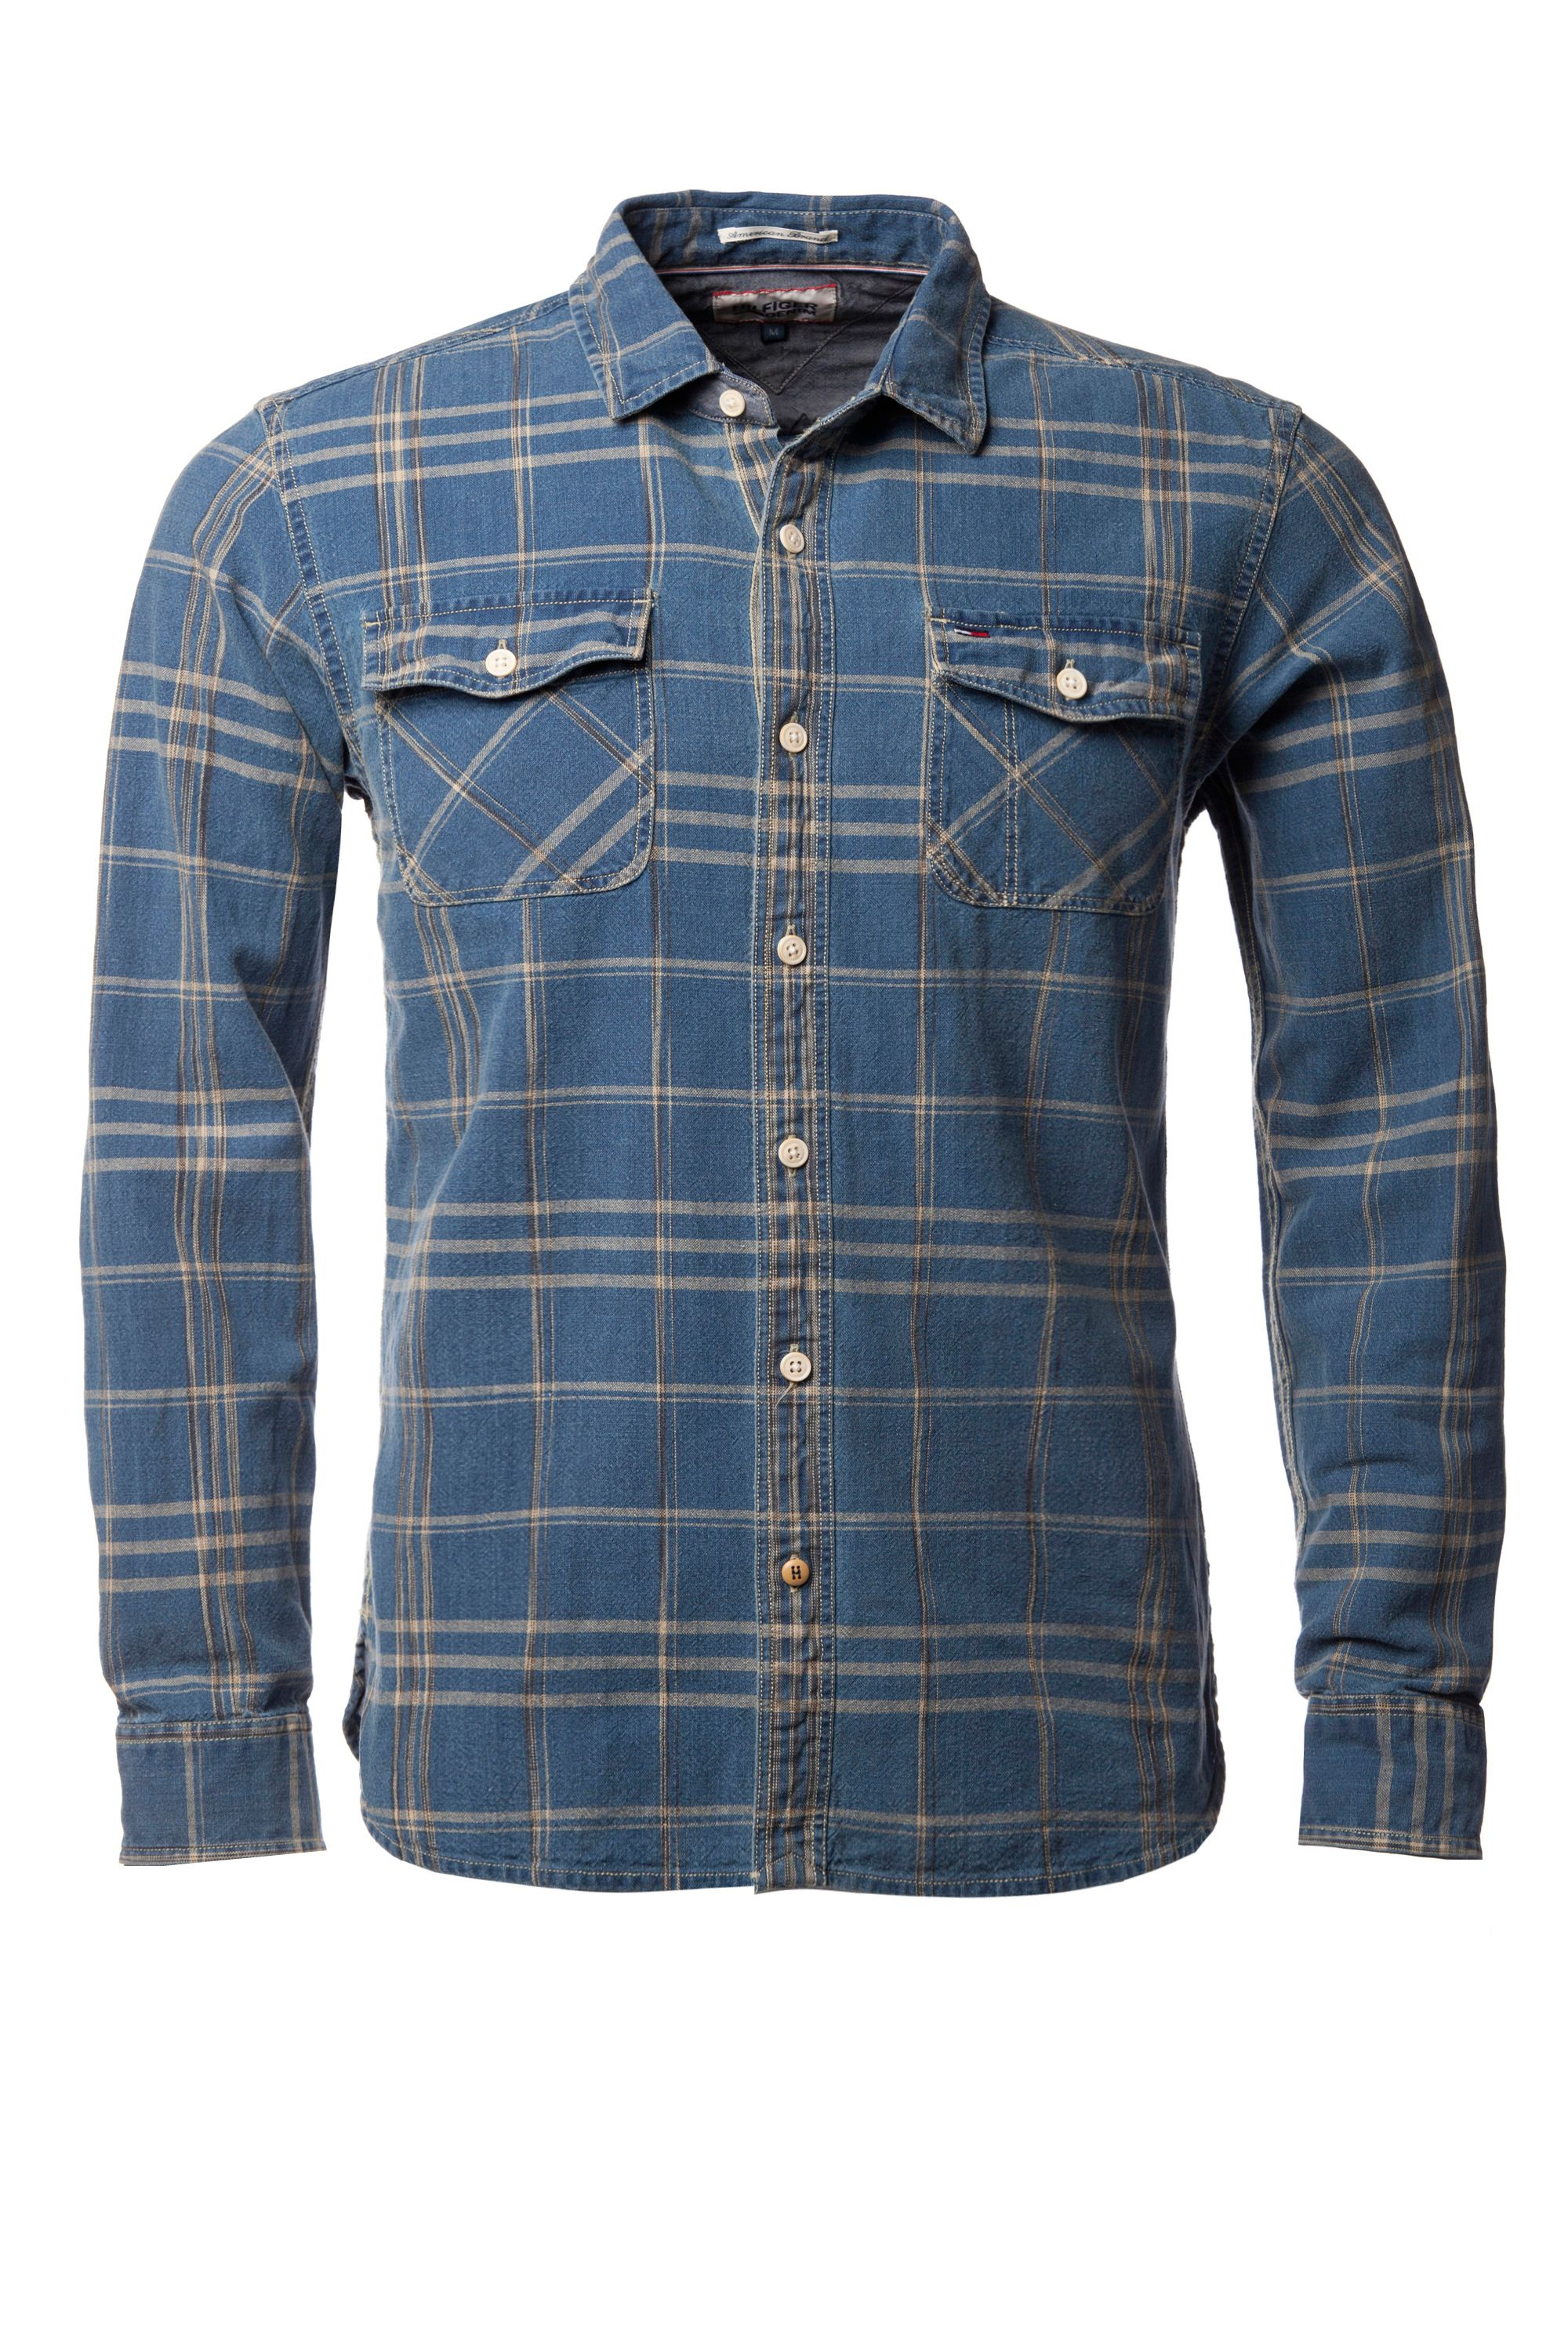 Tommy Hilfiger Norwich Check Slim Fit Long Sleeve Shirt In